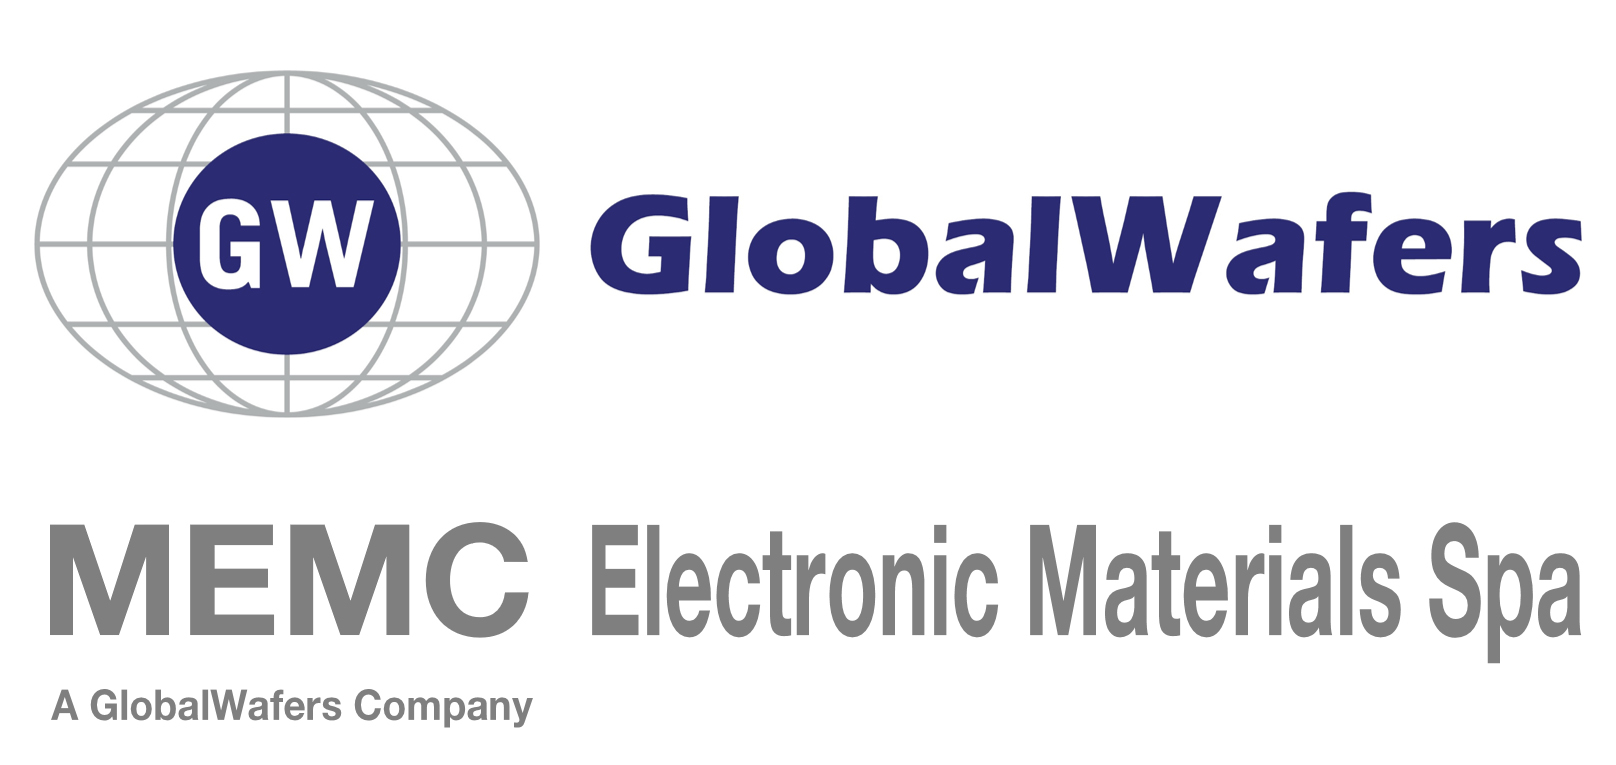 MEMC Electronic Materials Spa - a Global Wafers Company